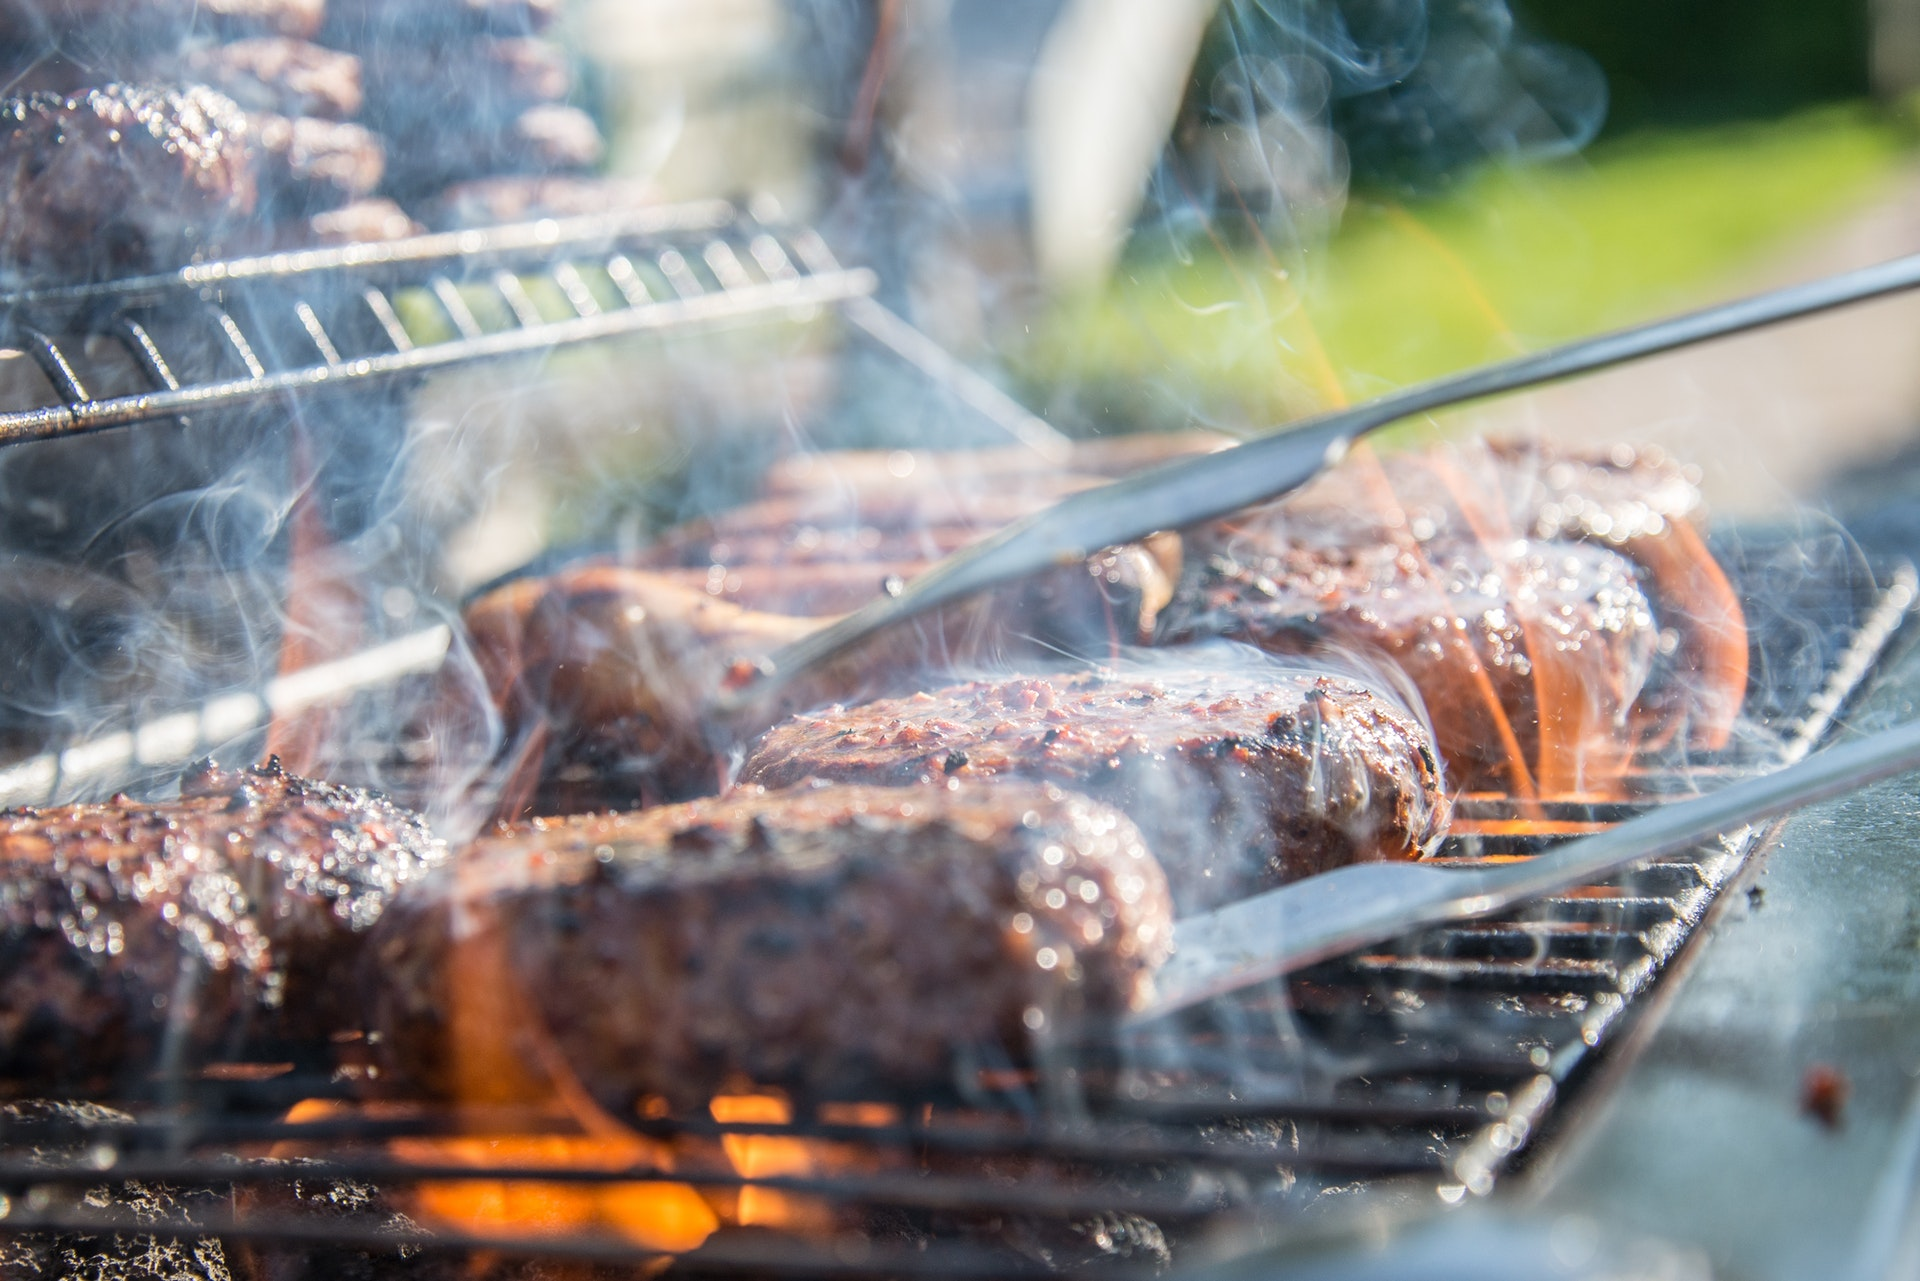 Summer BBQ Tools to Up Your Grill Game